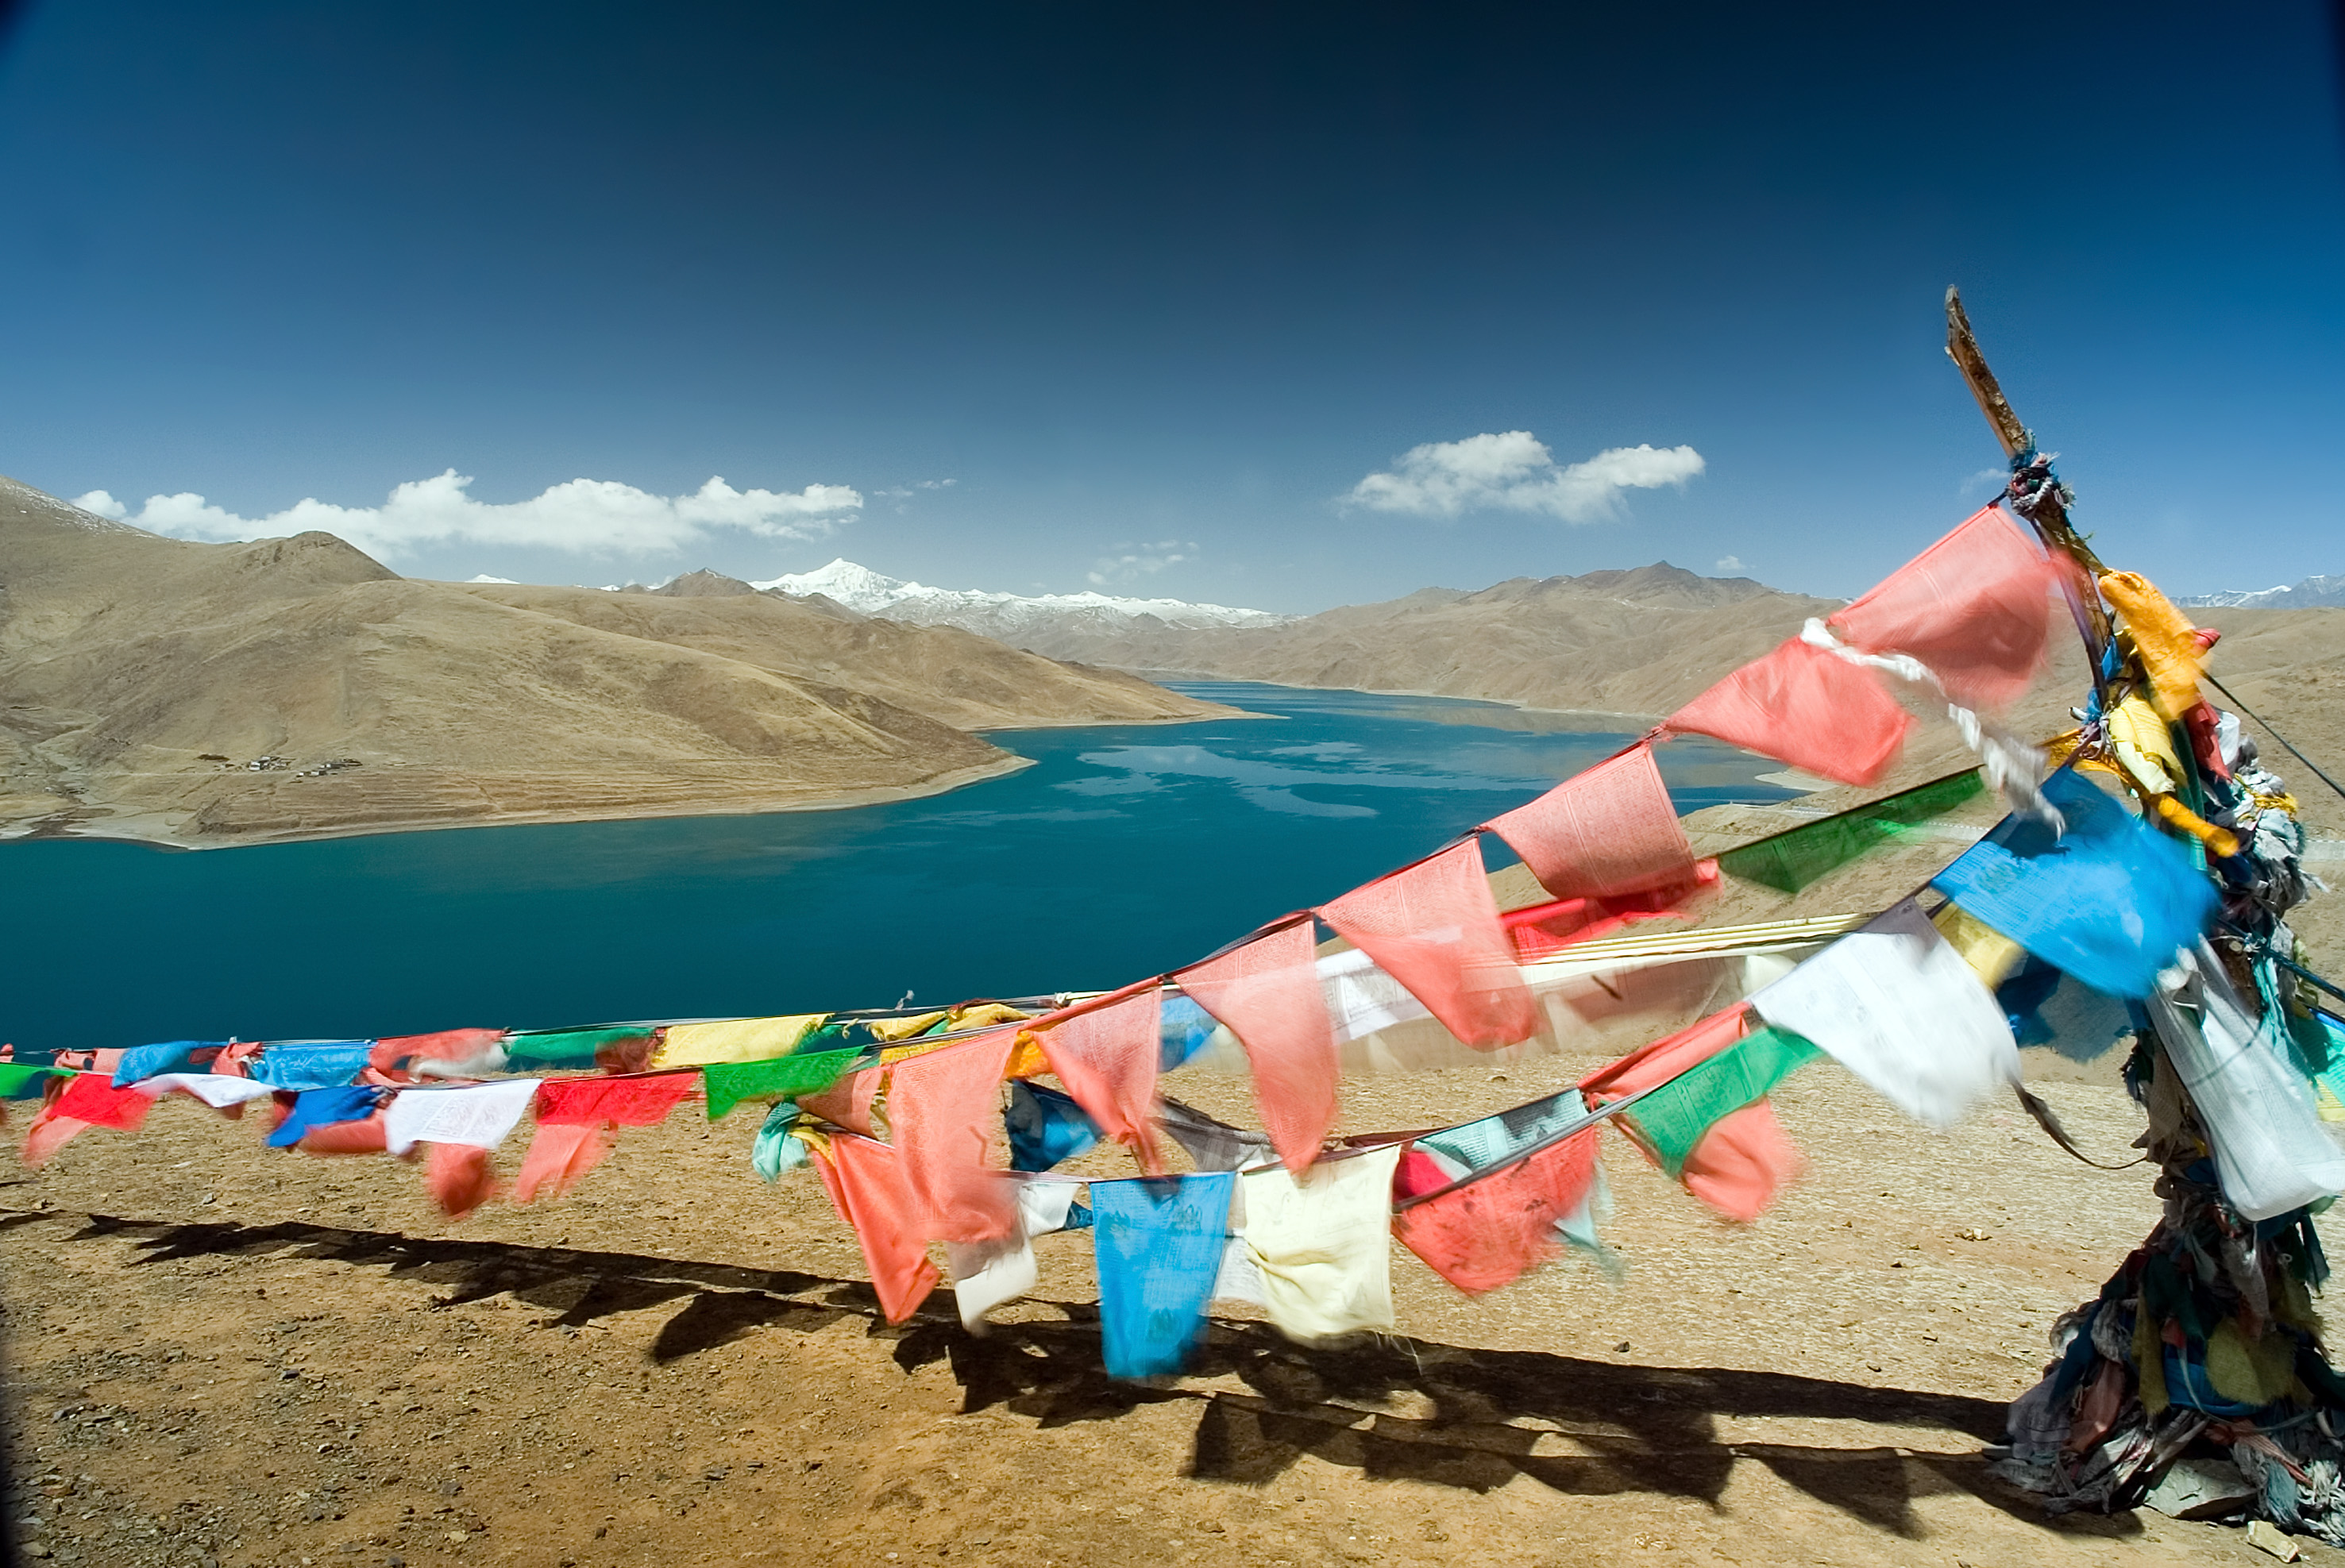 Buddhist prayer flags flutter at a pass overlooking Yamdrok Lake, which is considered one of Tibet's holy lakes. The lake sits at an altitude of more than 13,000 ft.